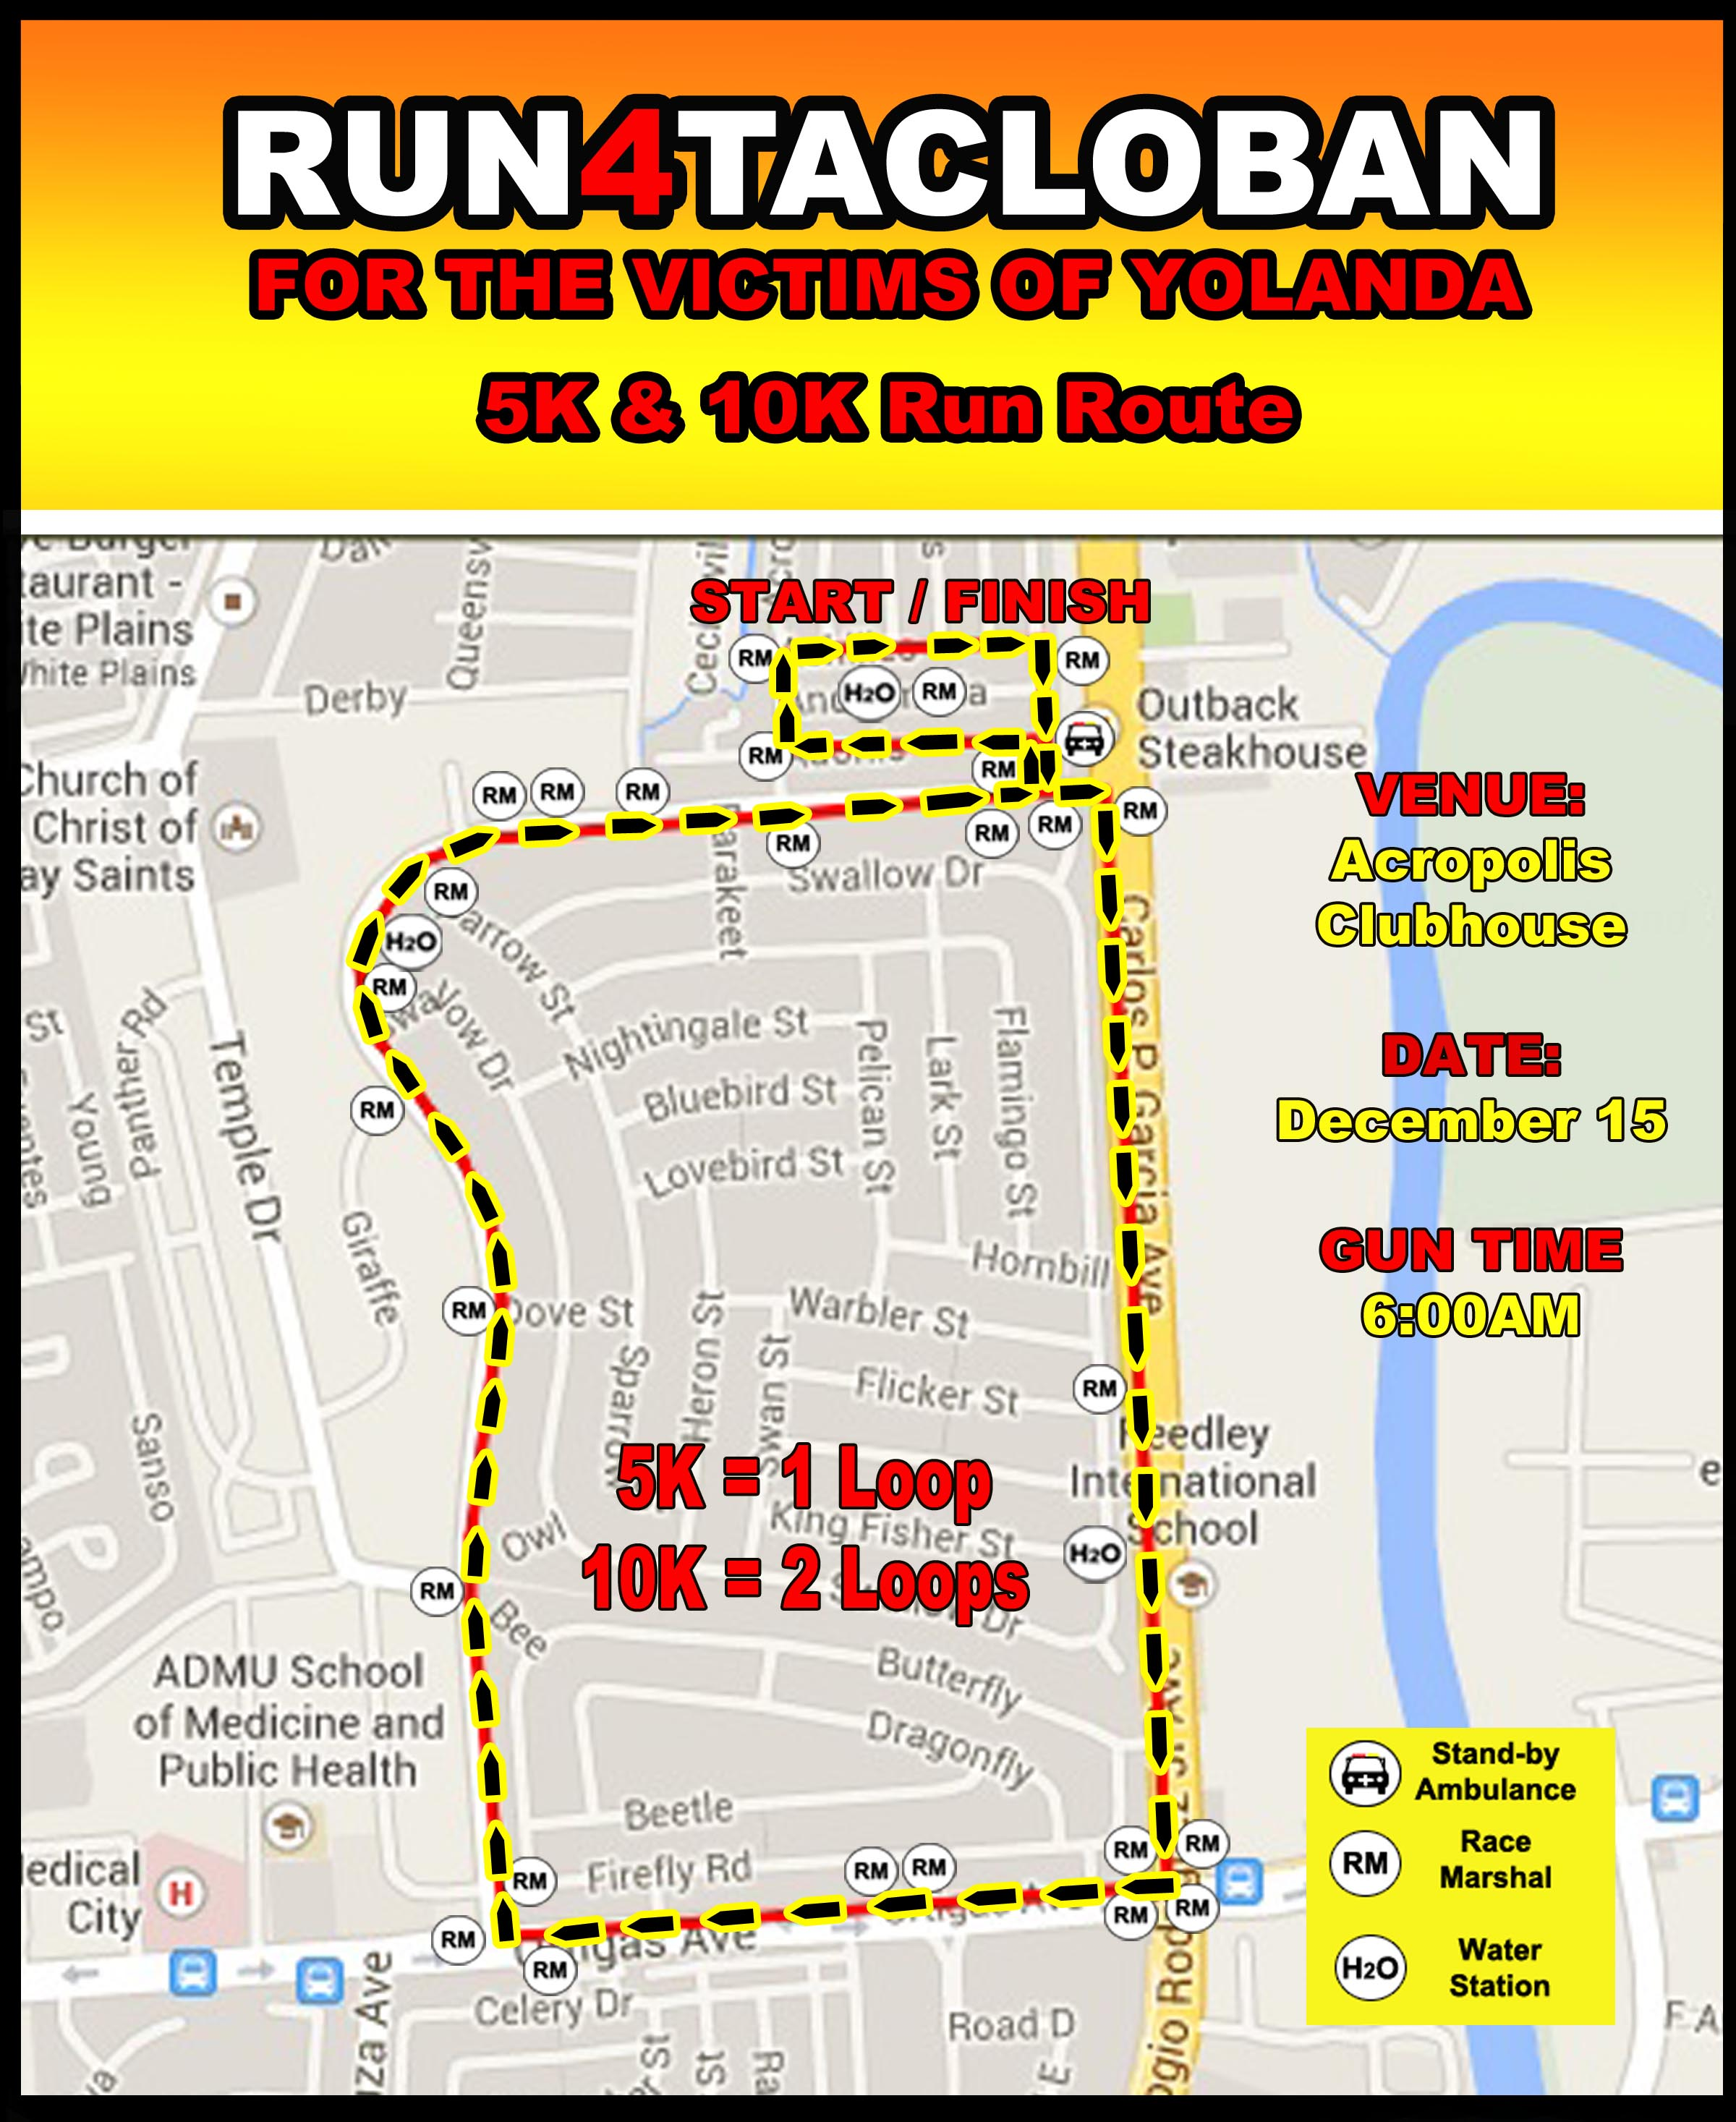 run-4-tacloban-2013-route-map